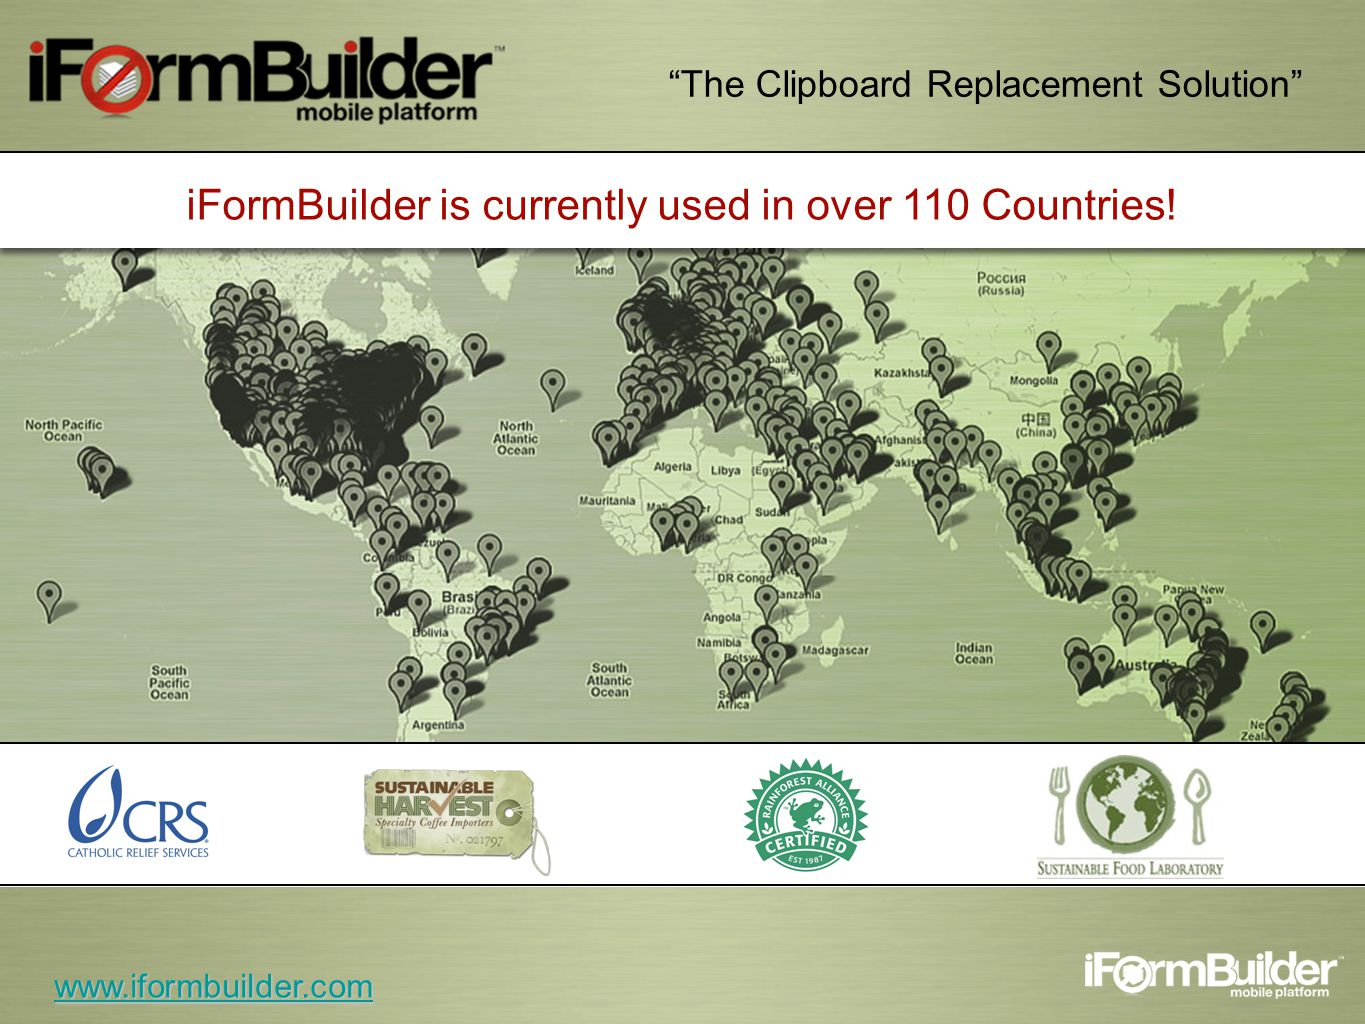 iFormBuilder is currently used in over 110 Countries.